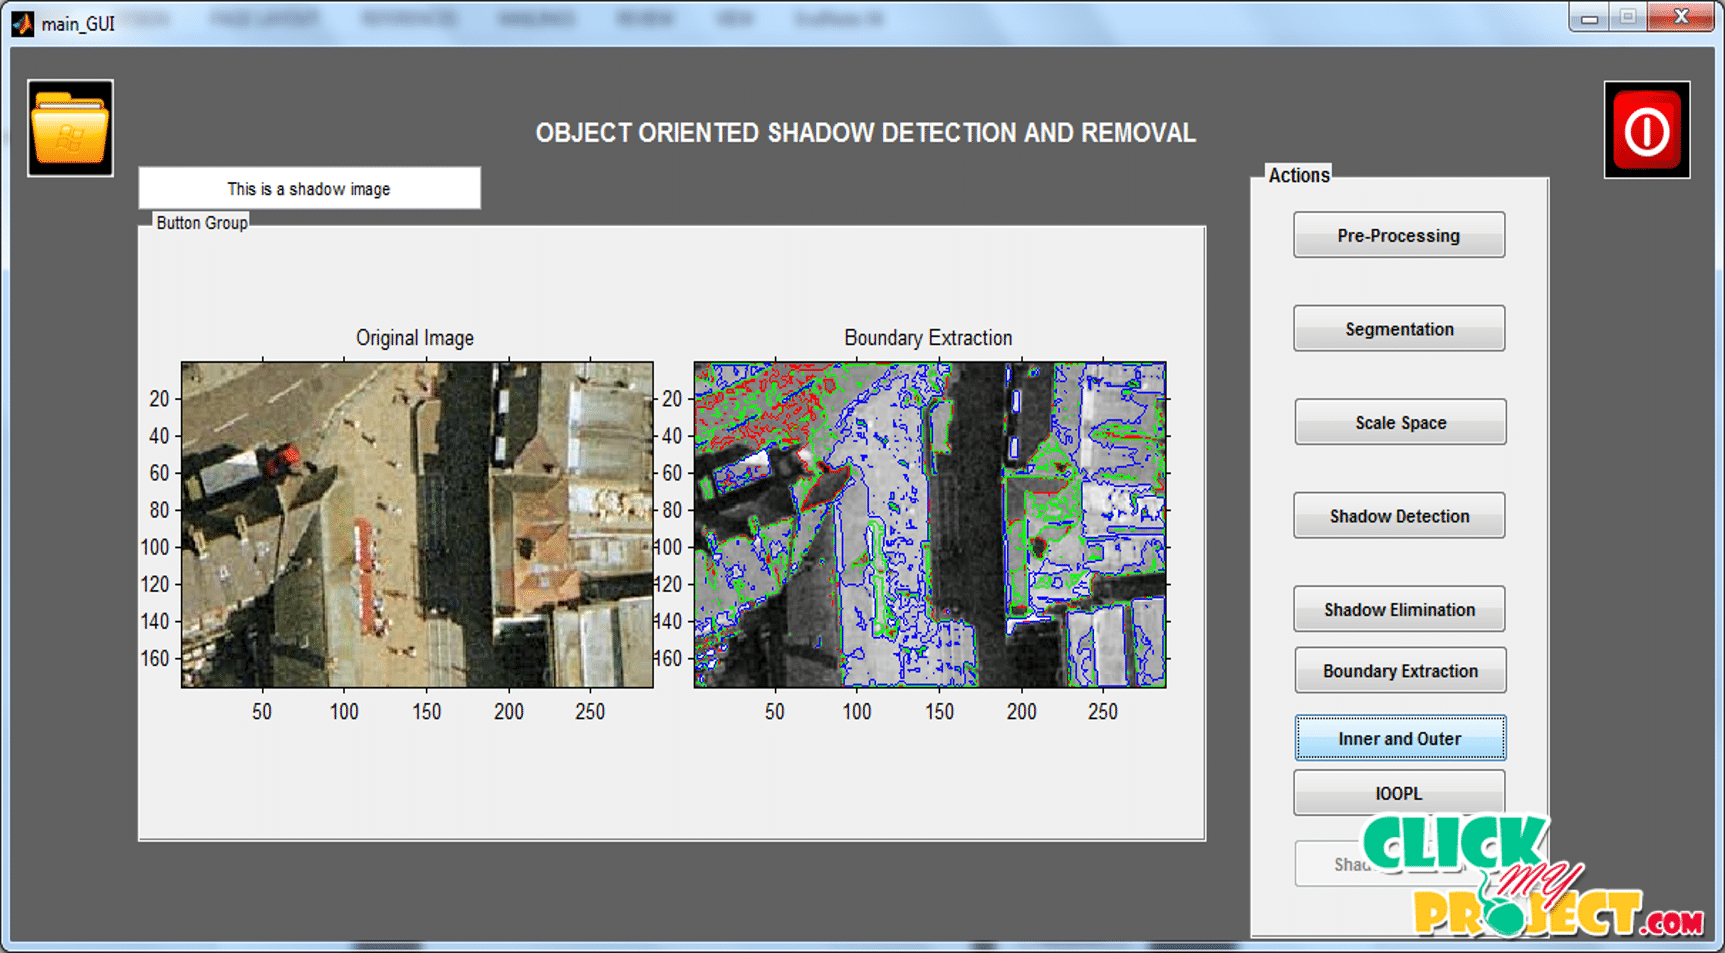 Object-Oriented Shadow Detection and Removal From Urban High-Resolution Remote Sensing Images | 2015 Projects